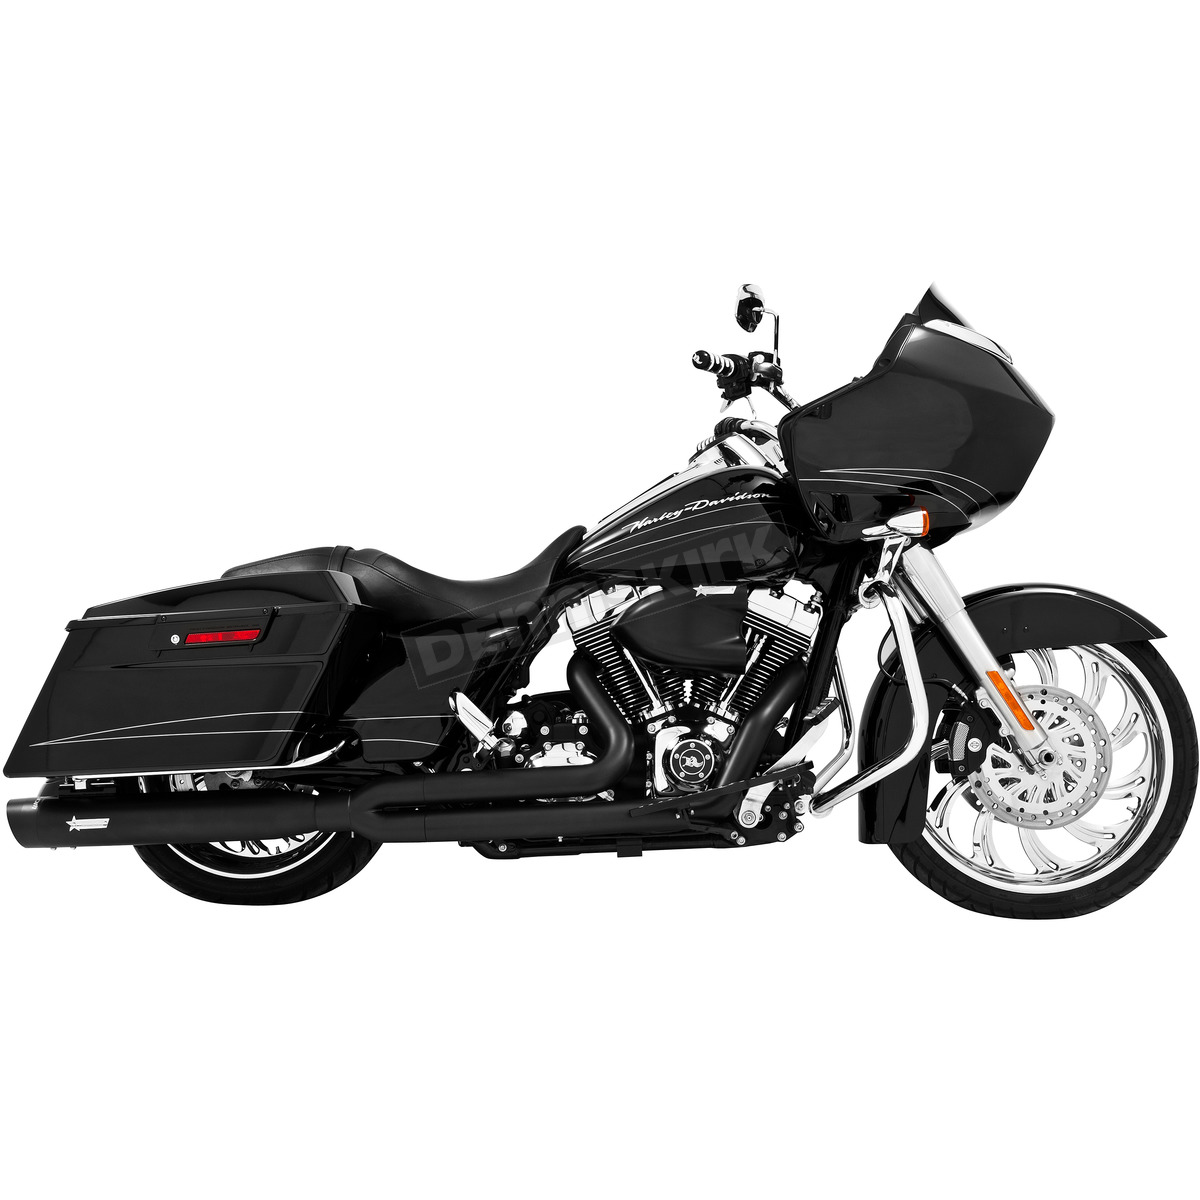 black union 2 into 1 exhaust system hd00233